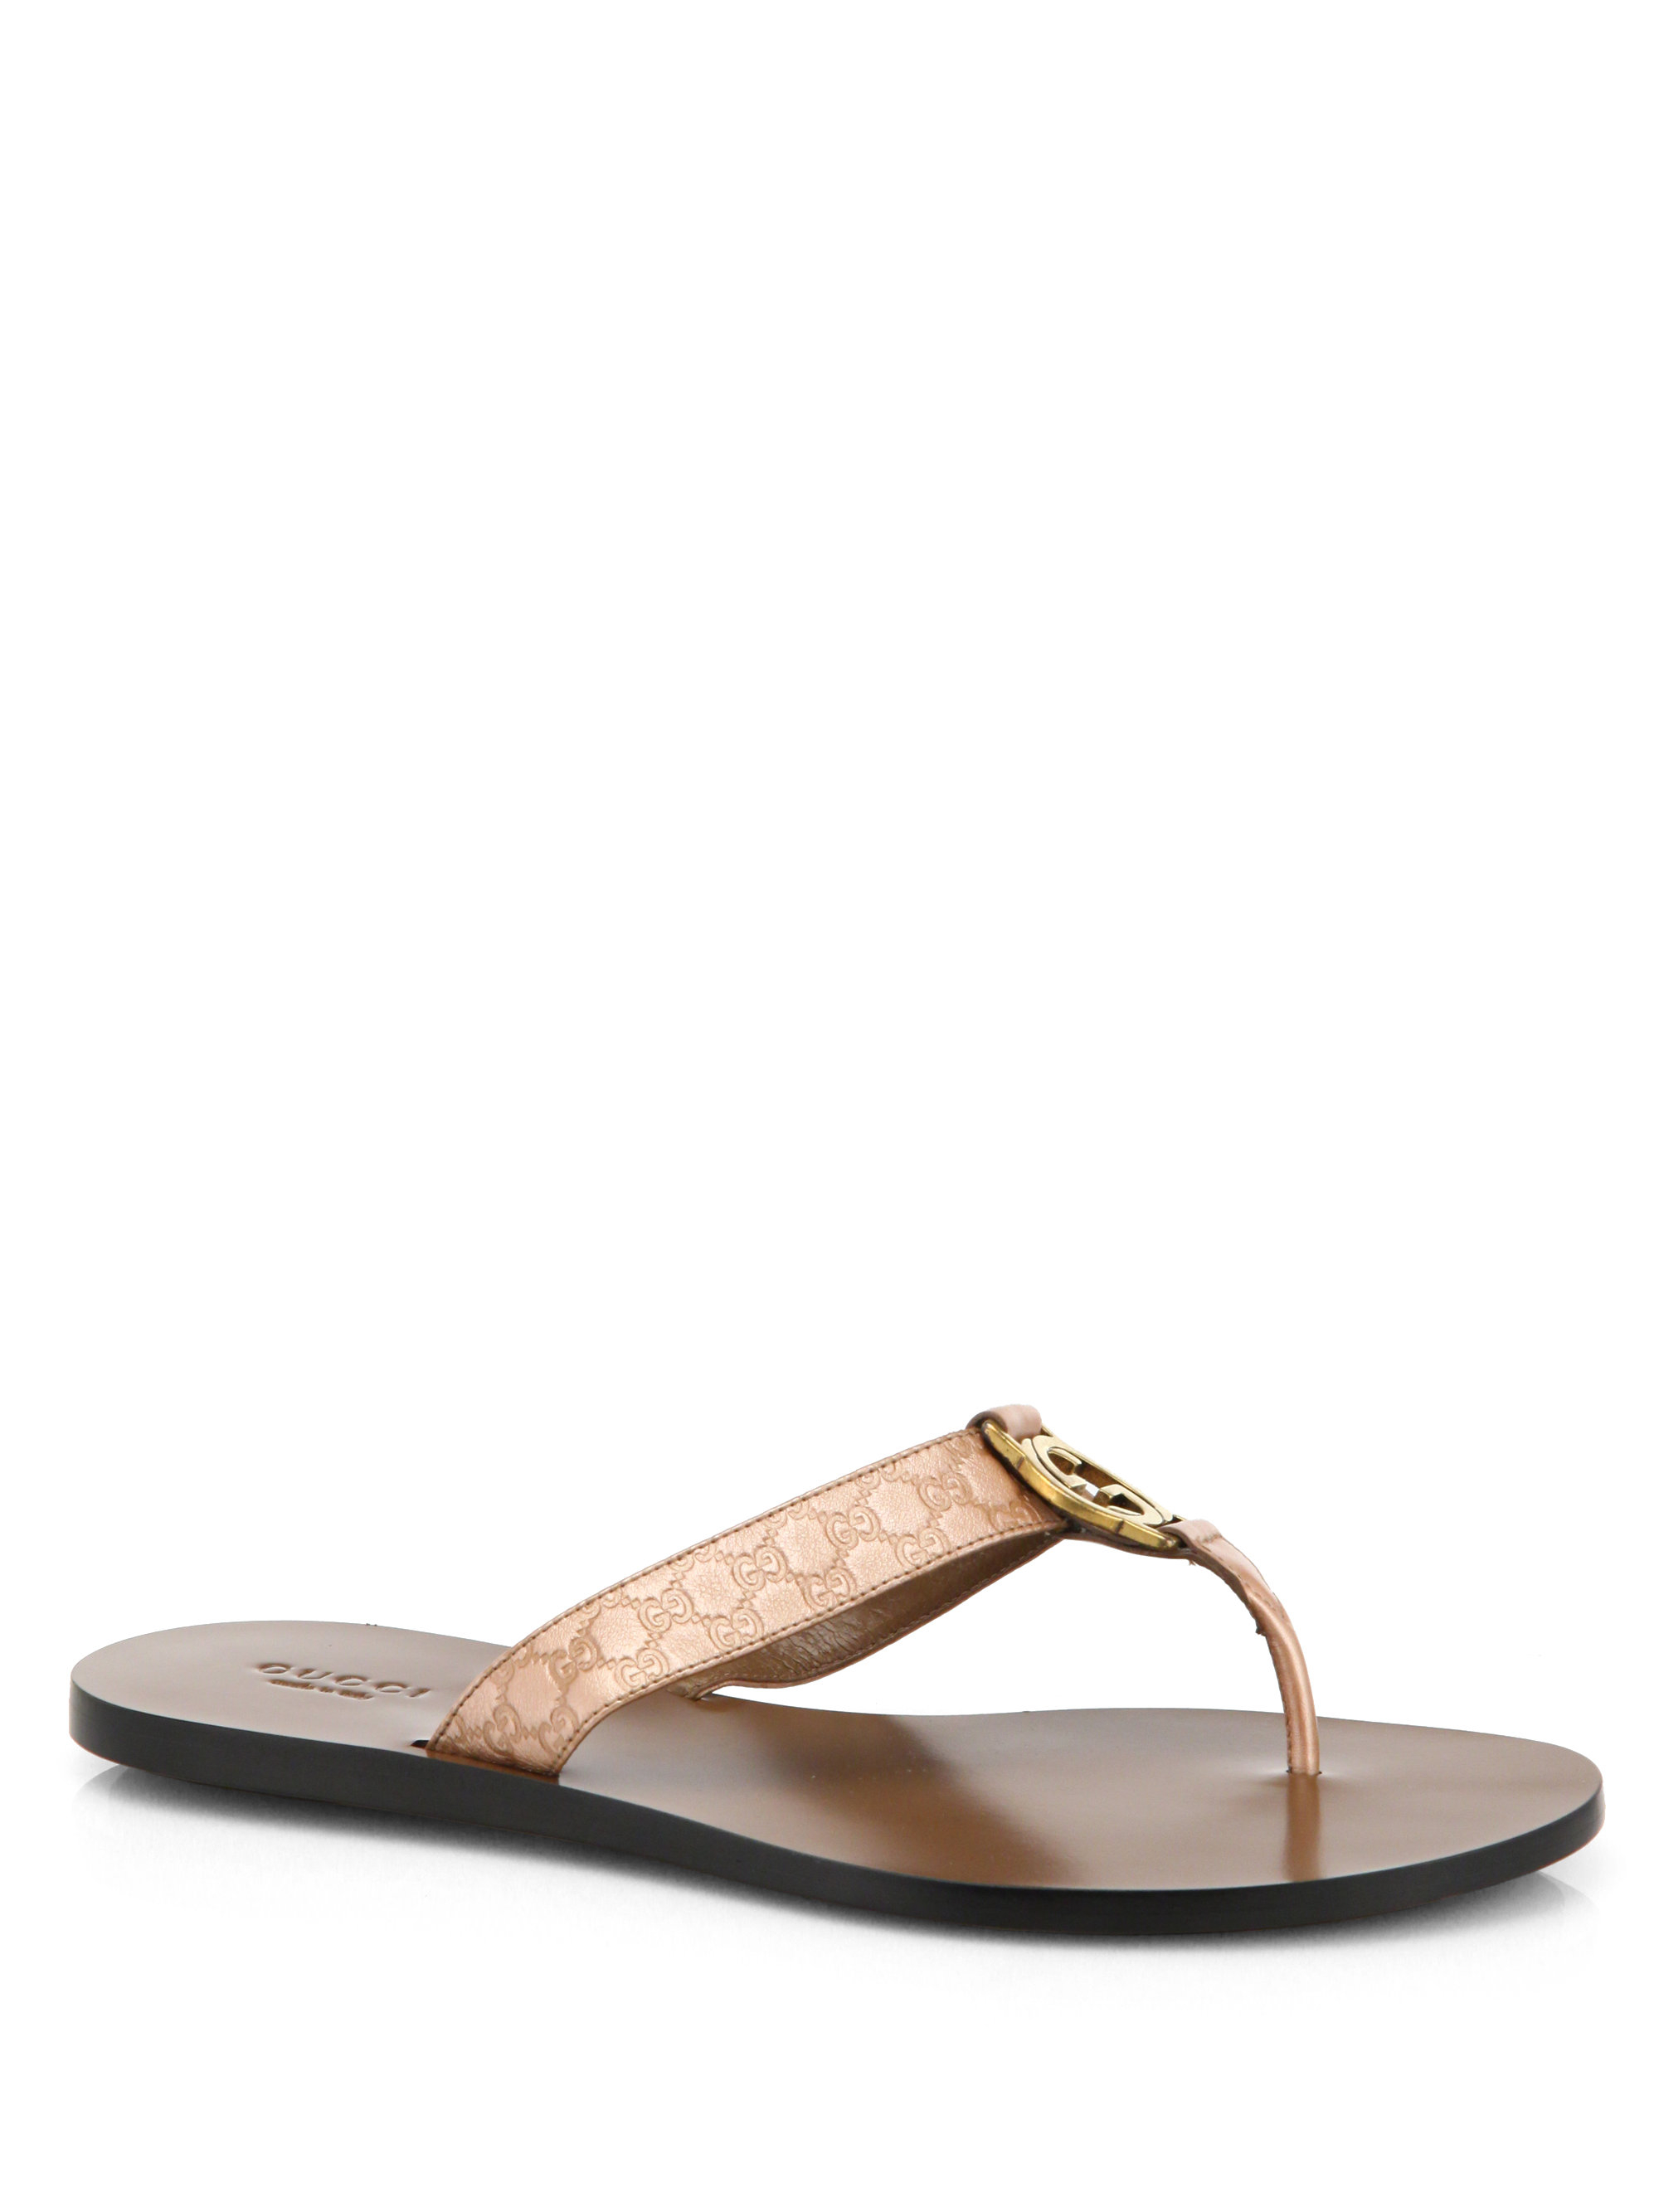 Gucci Gg Patent Leather Thong Sandals in Natural - Lyst aab5bdb0d